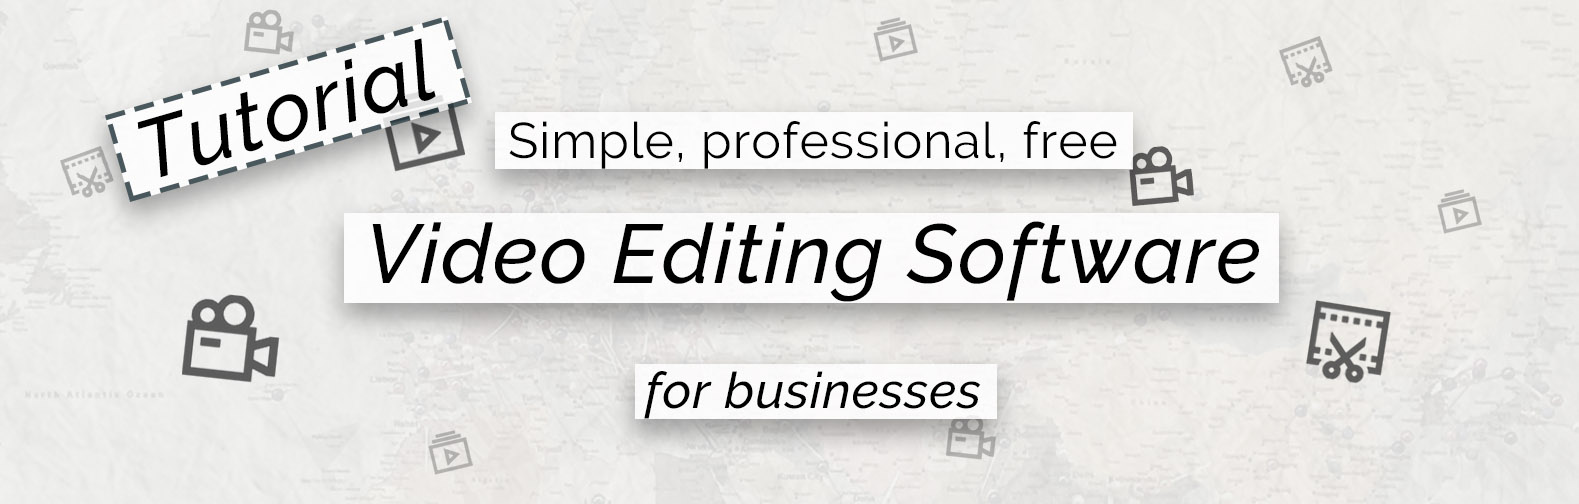 Video editing tutorial: simple, free, professional software